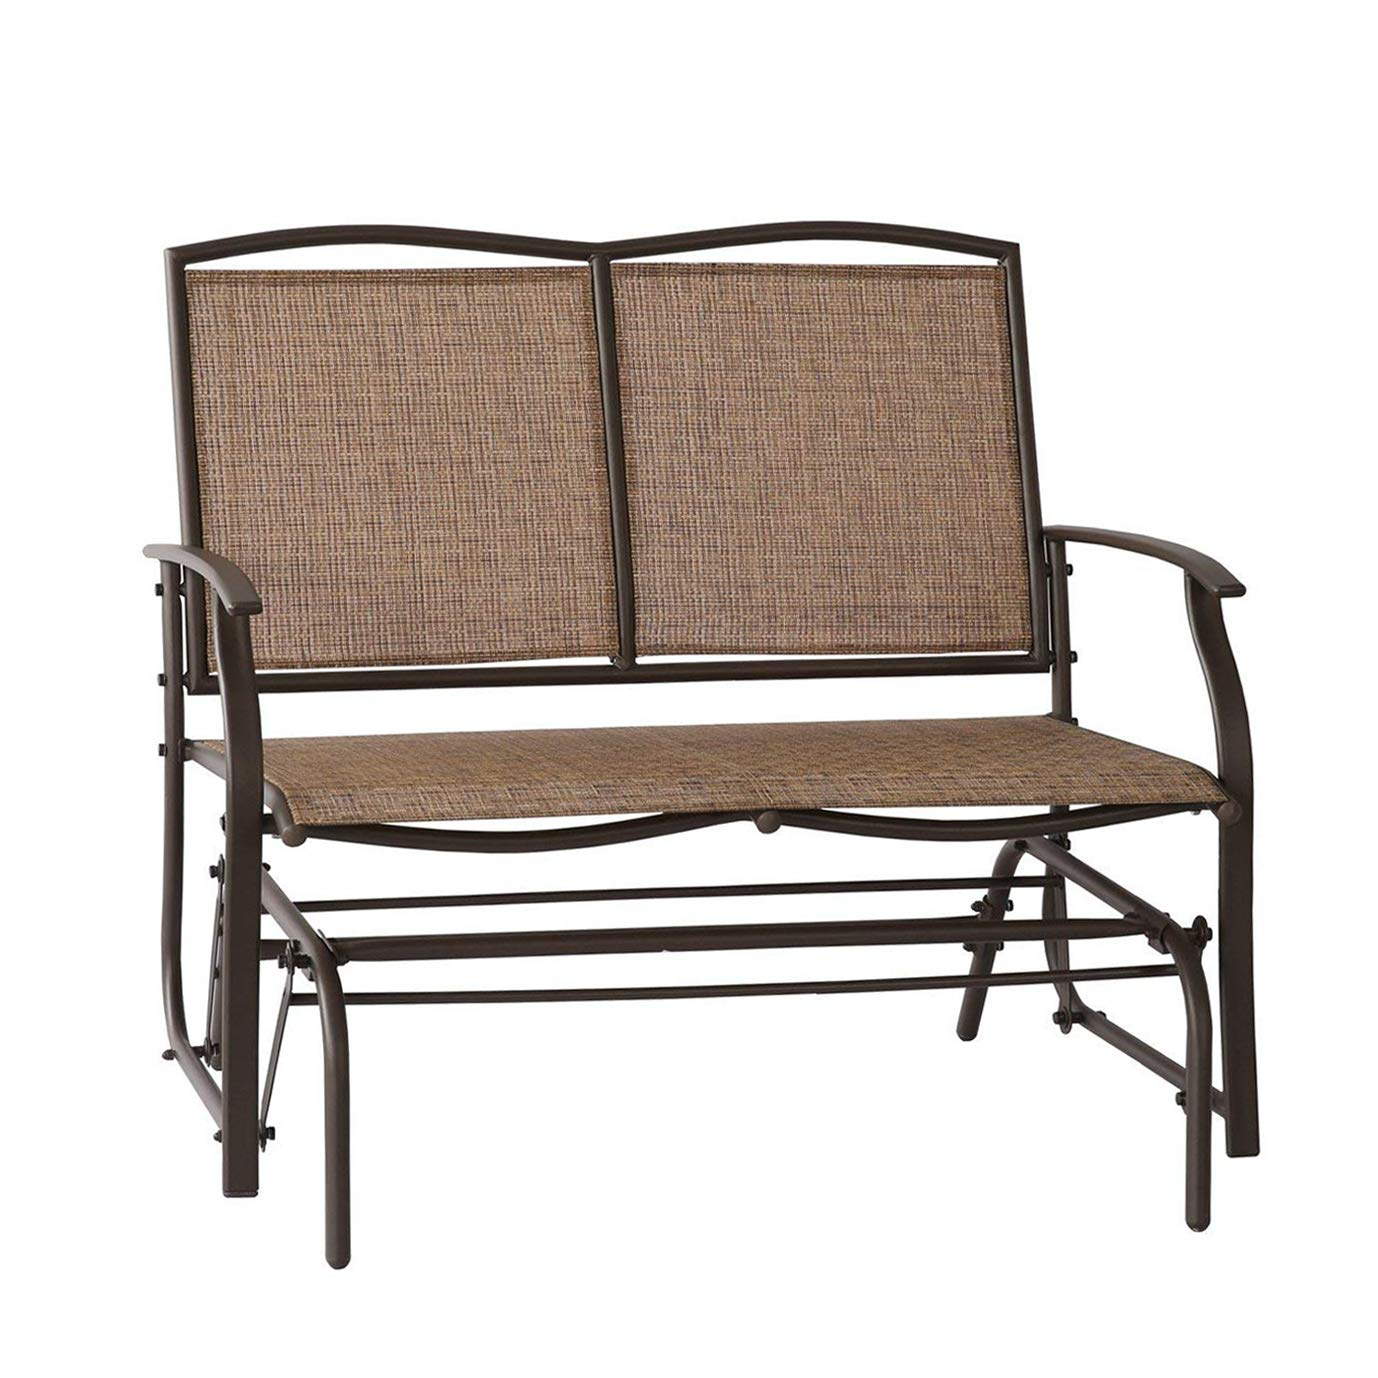 Leissu TRC-201 Patio Glider Swing Bench 2 Persons Outdoor Loveseat, Rocking Chair Brown